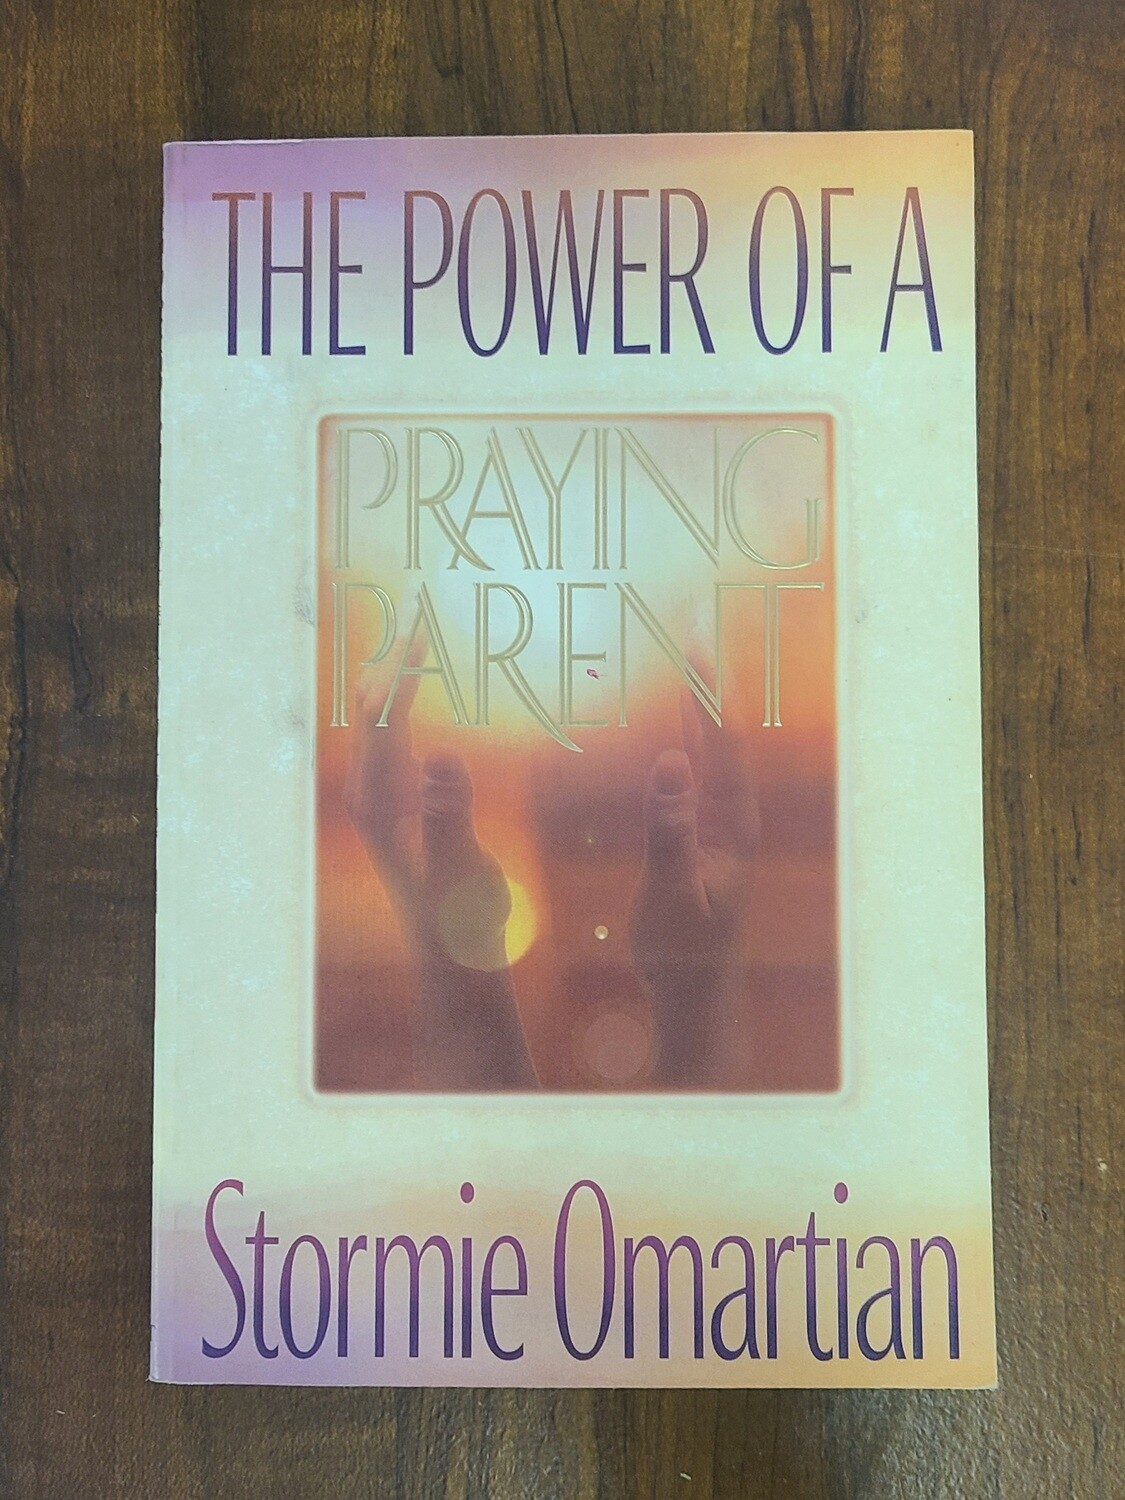 The Power of a Praying Parent by Stormie O'Martian